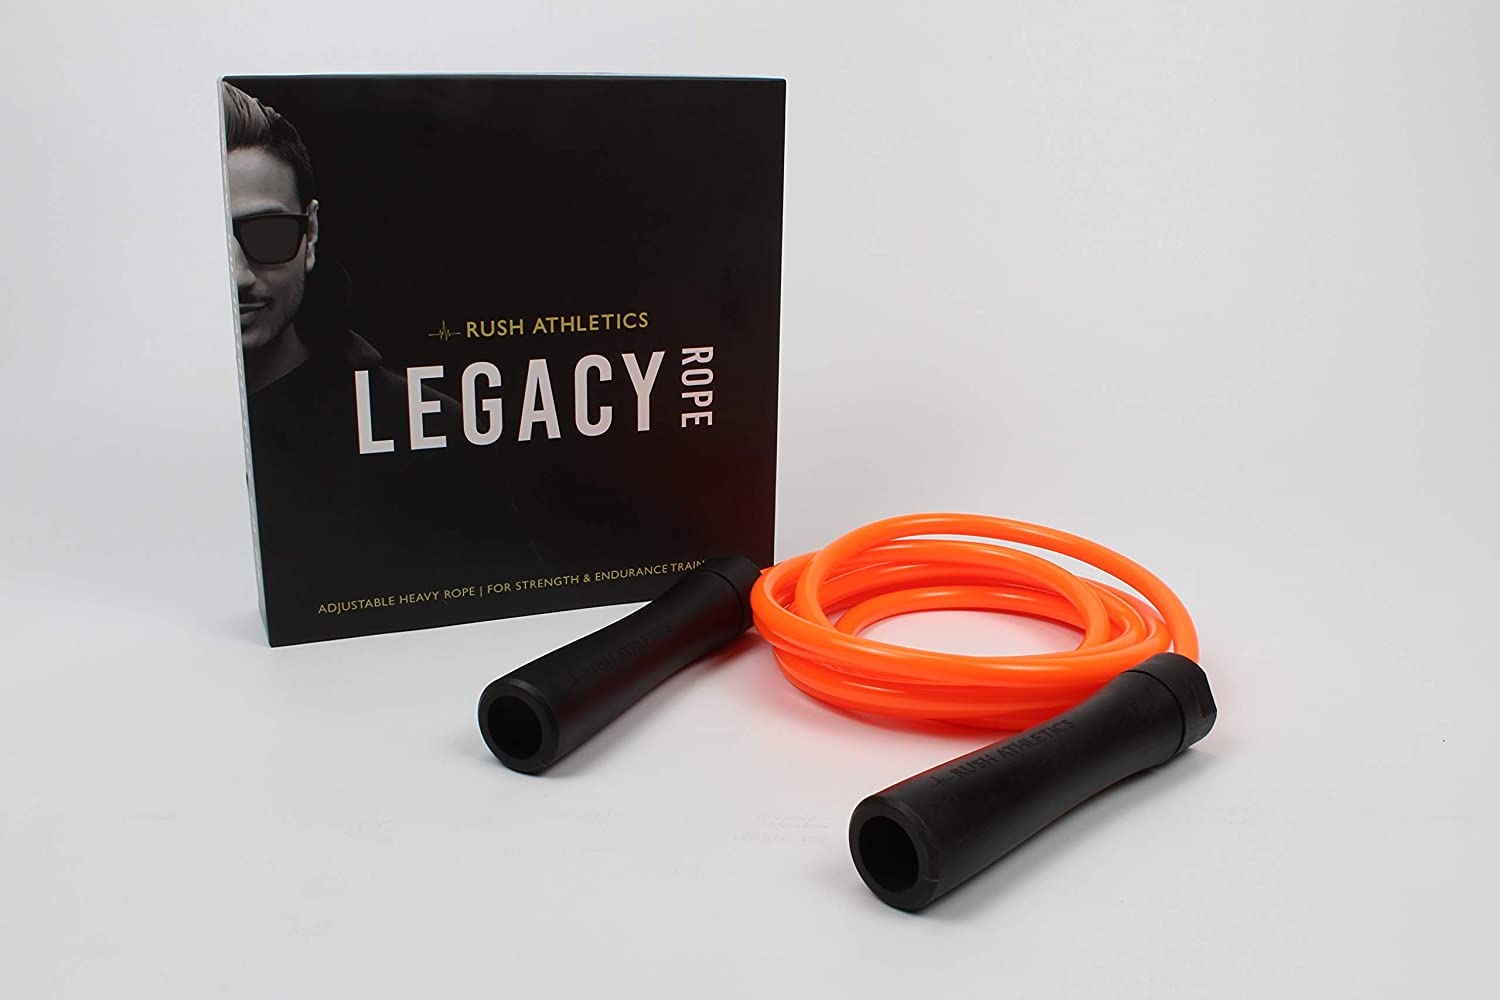 RUSH ATHLETICS Legacy Weighted Jump Rope - Best for Weight Loss